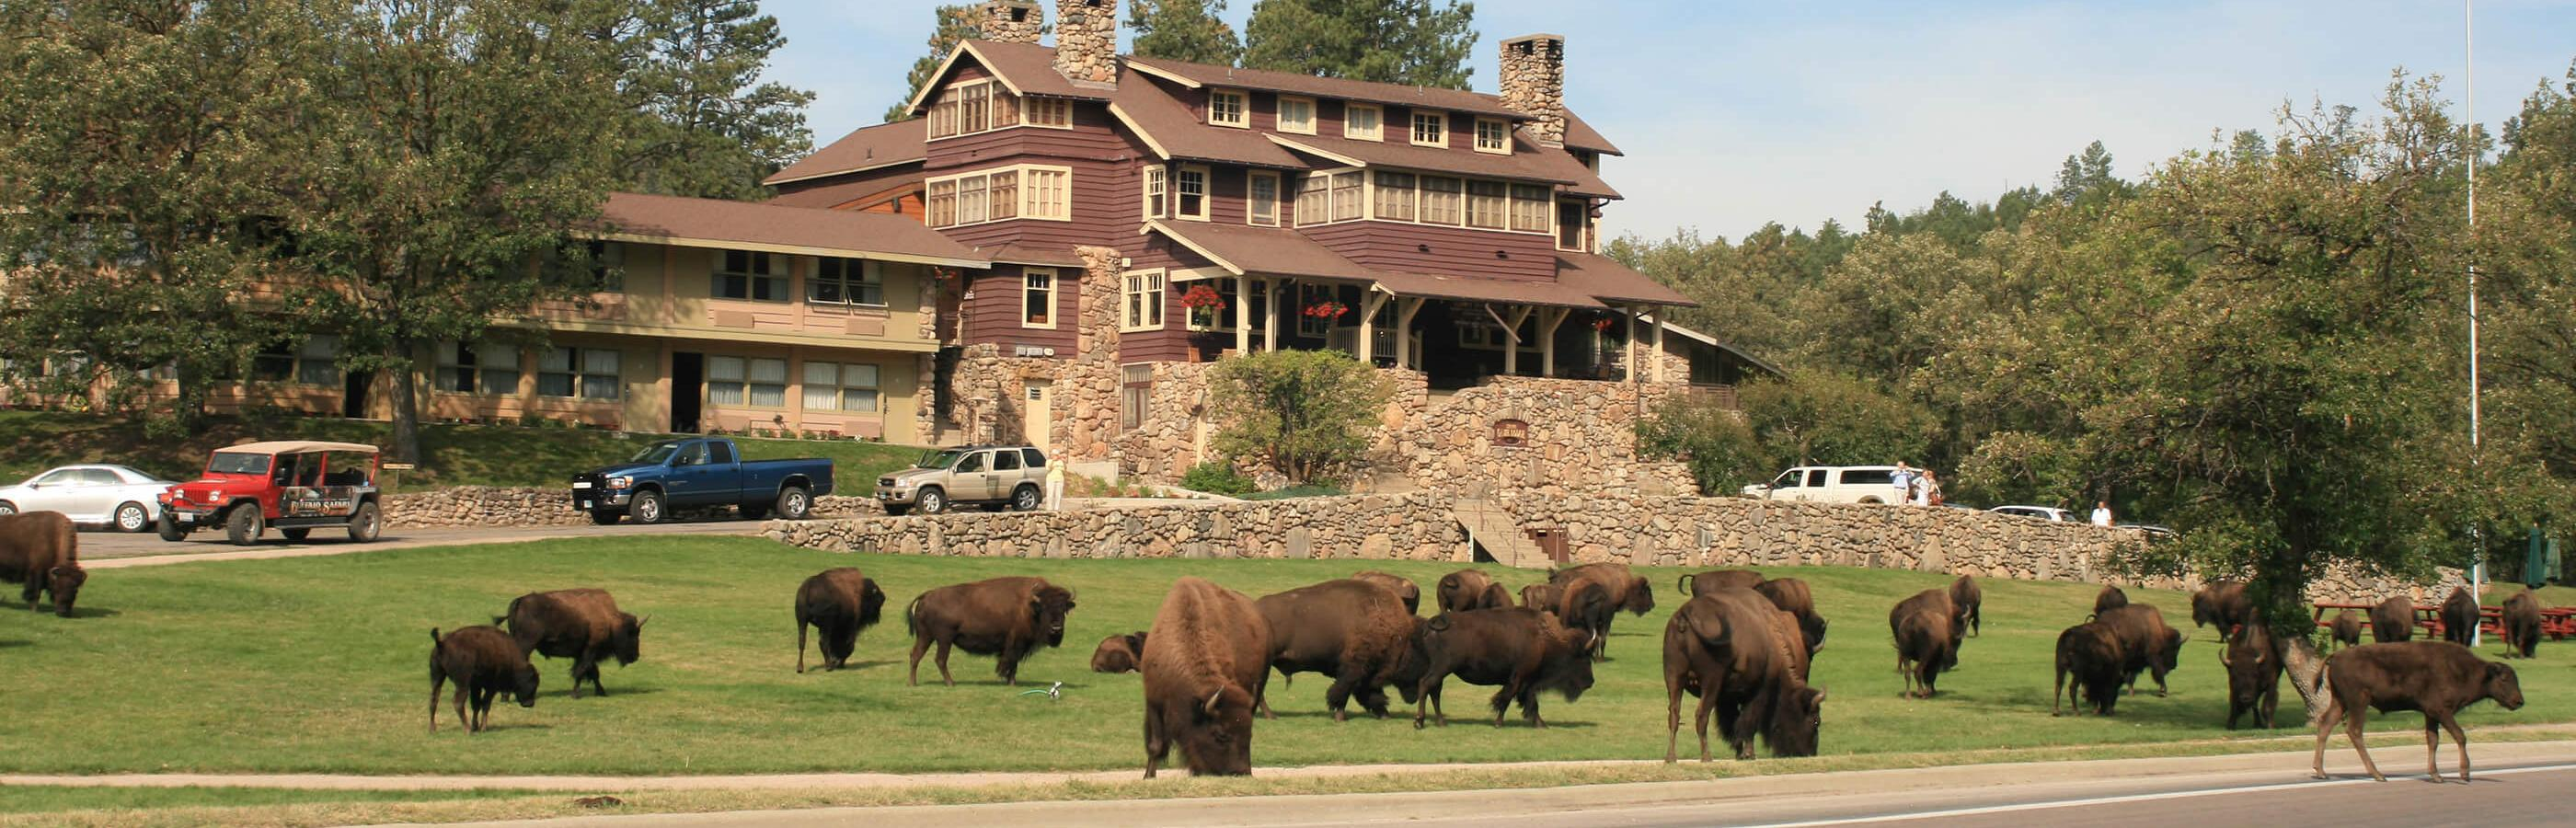 Game Lodge at Custer State Park